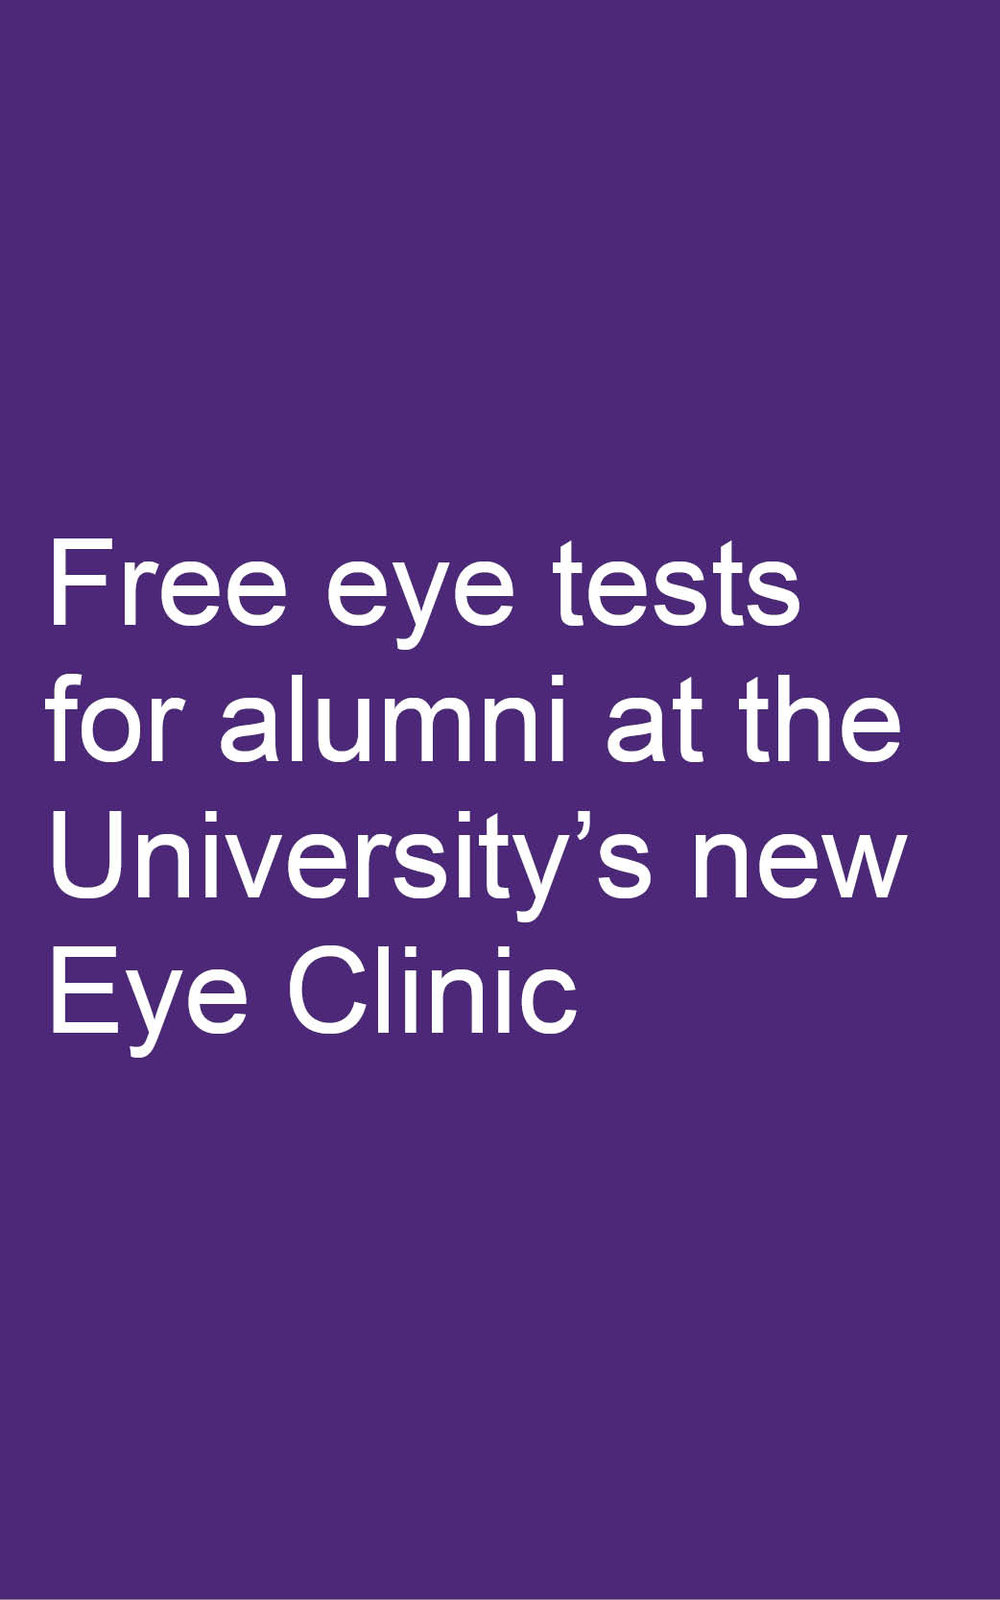 Eye test card for benefits page Mar 2019.jpg